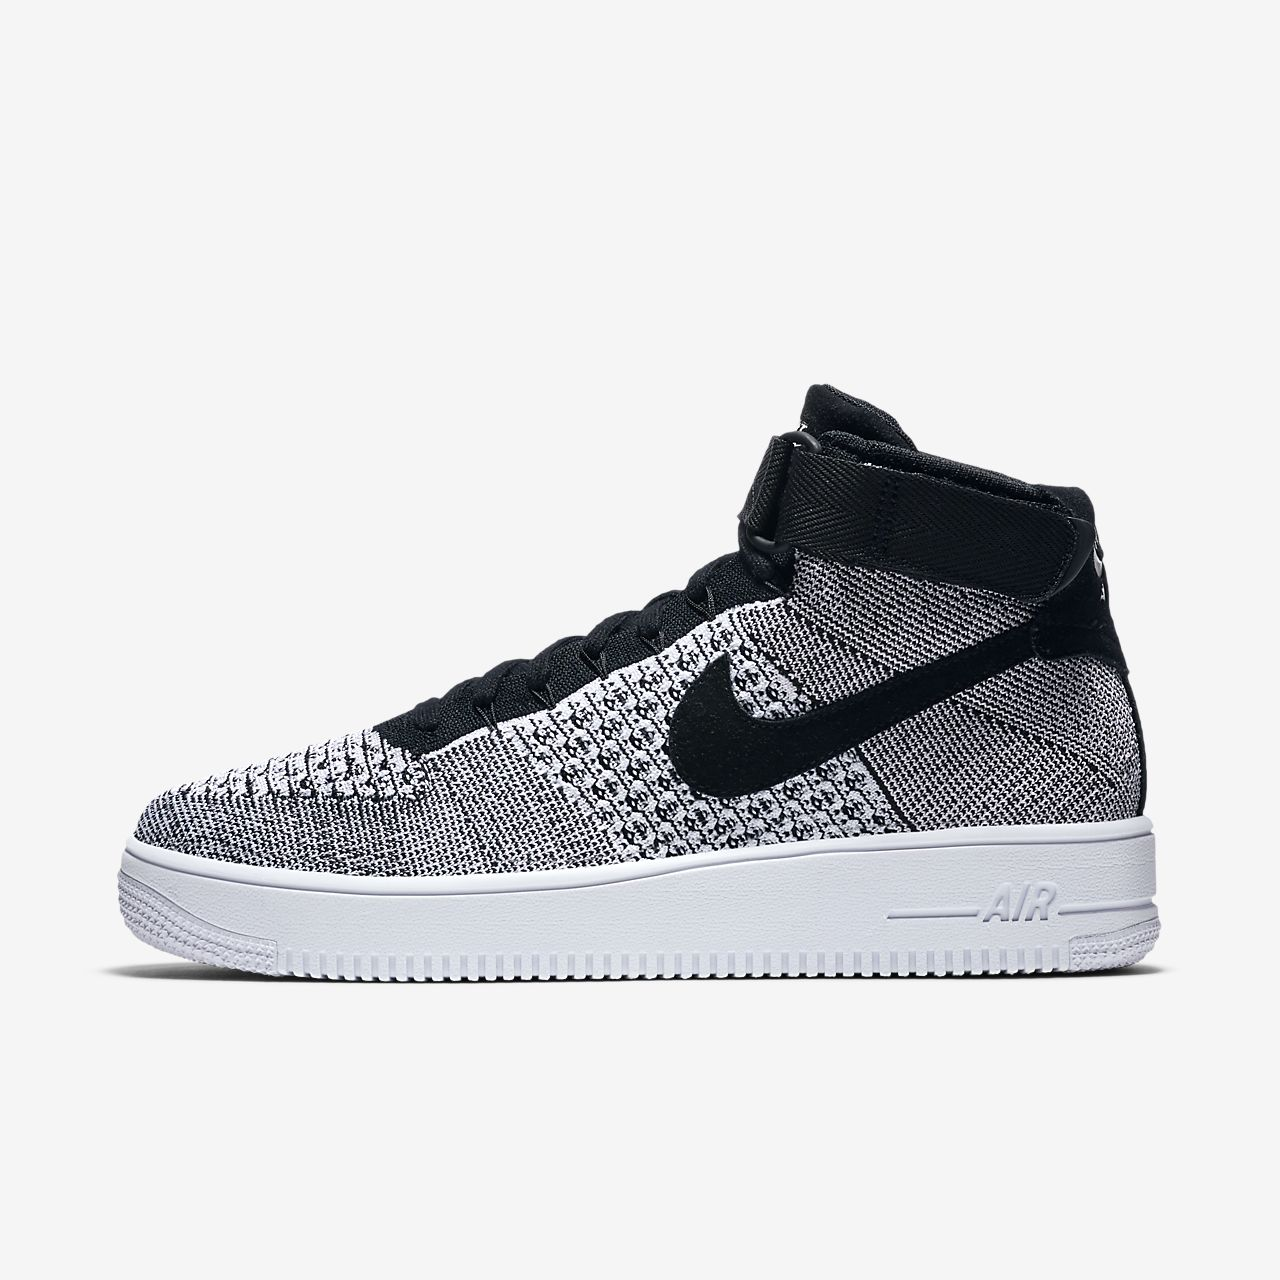 nike air force 1 ultra flyknit. Black Bedroom Furniture Sets. Home Design Ideas